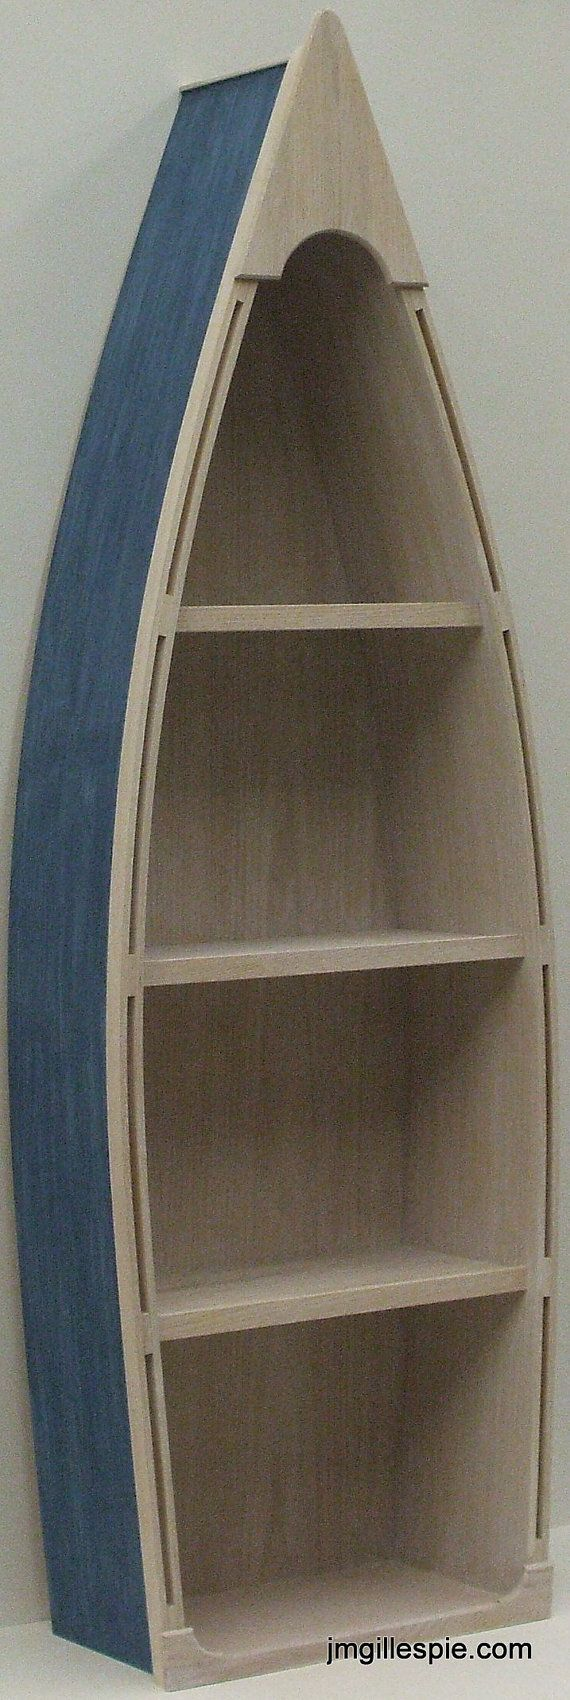 5 Foot blue row Boat Bookshelf Bookcase shelves skiff schooner canoe shelf nautical man cave Dorey. 1000  ideas about Boat Shelf on Pinterest   Nautical theme